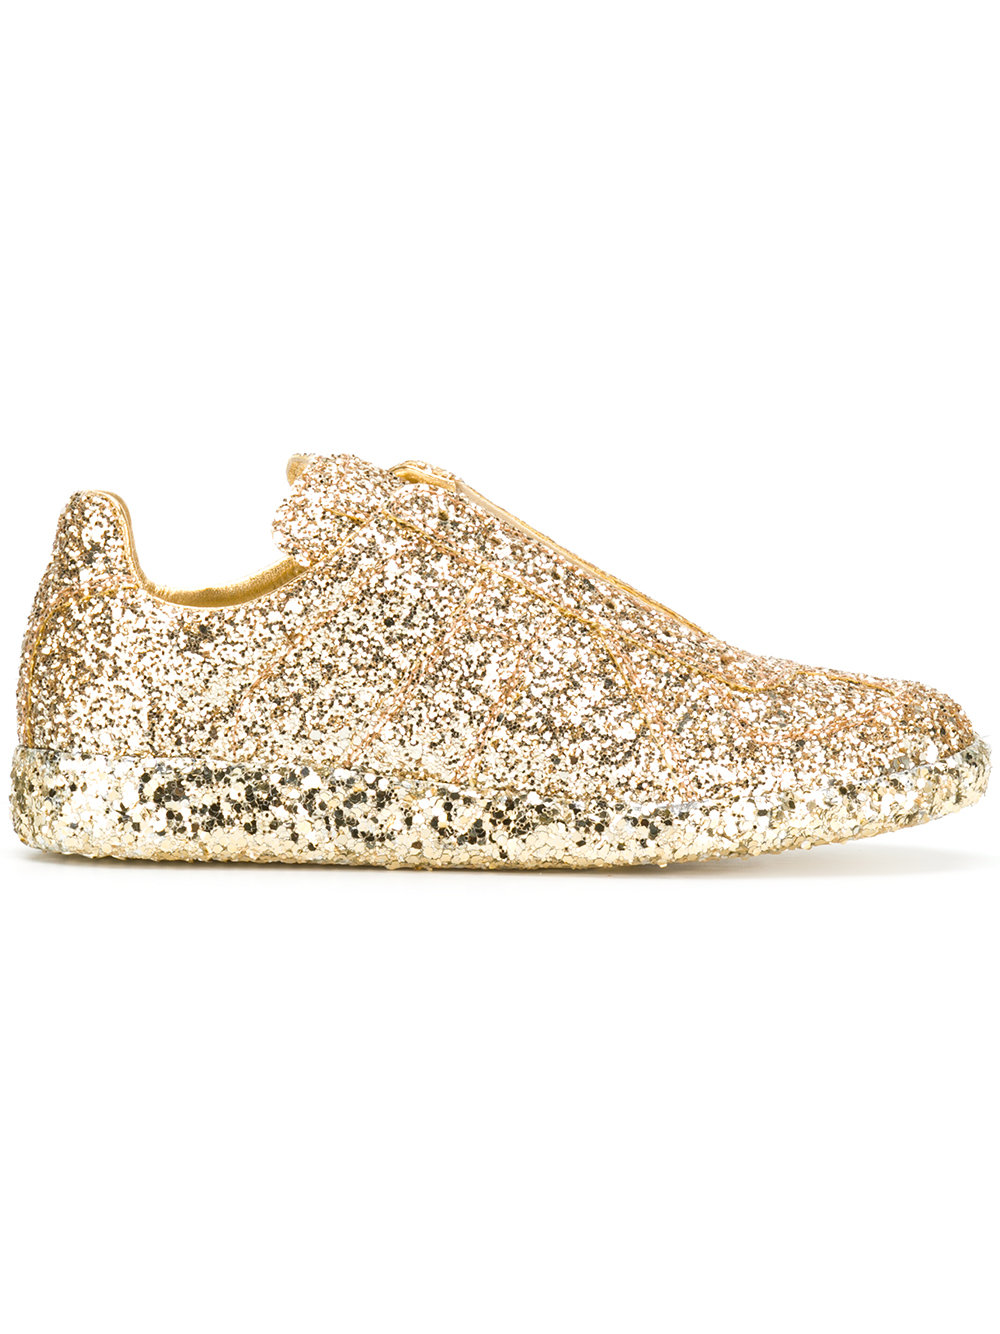 Maison Margiela glitter slip-on sneakers   $725